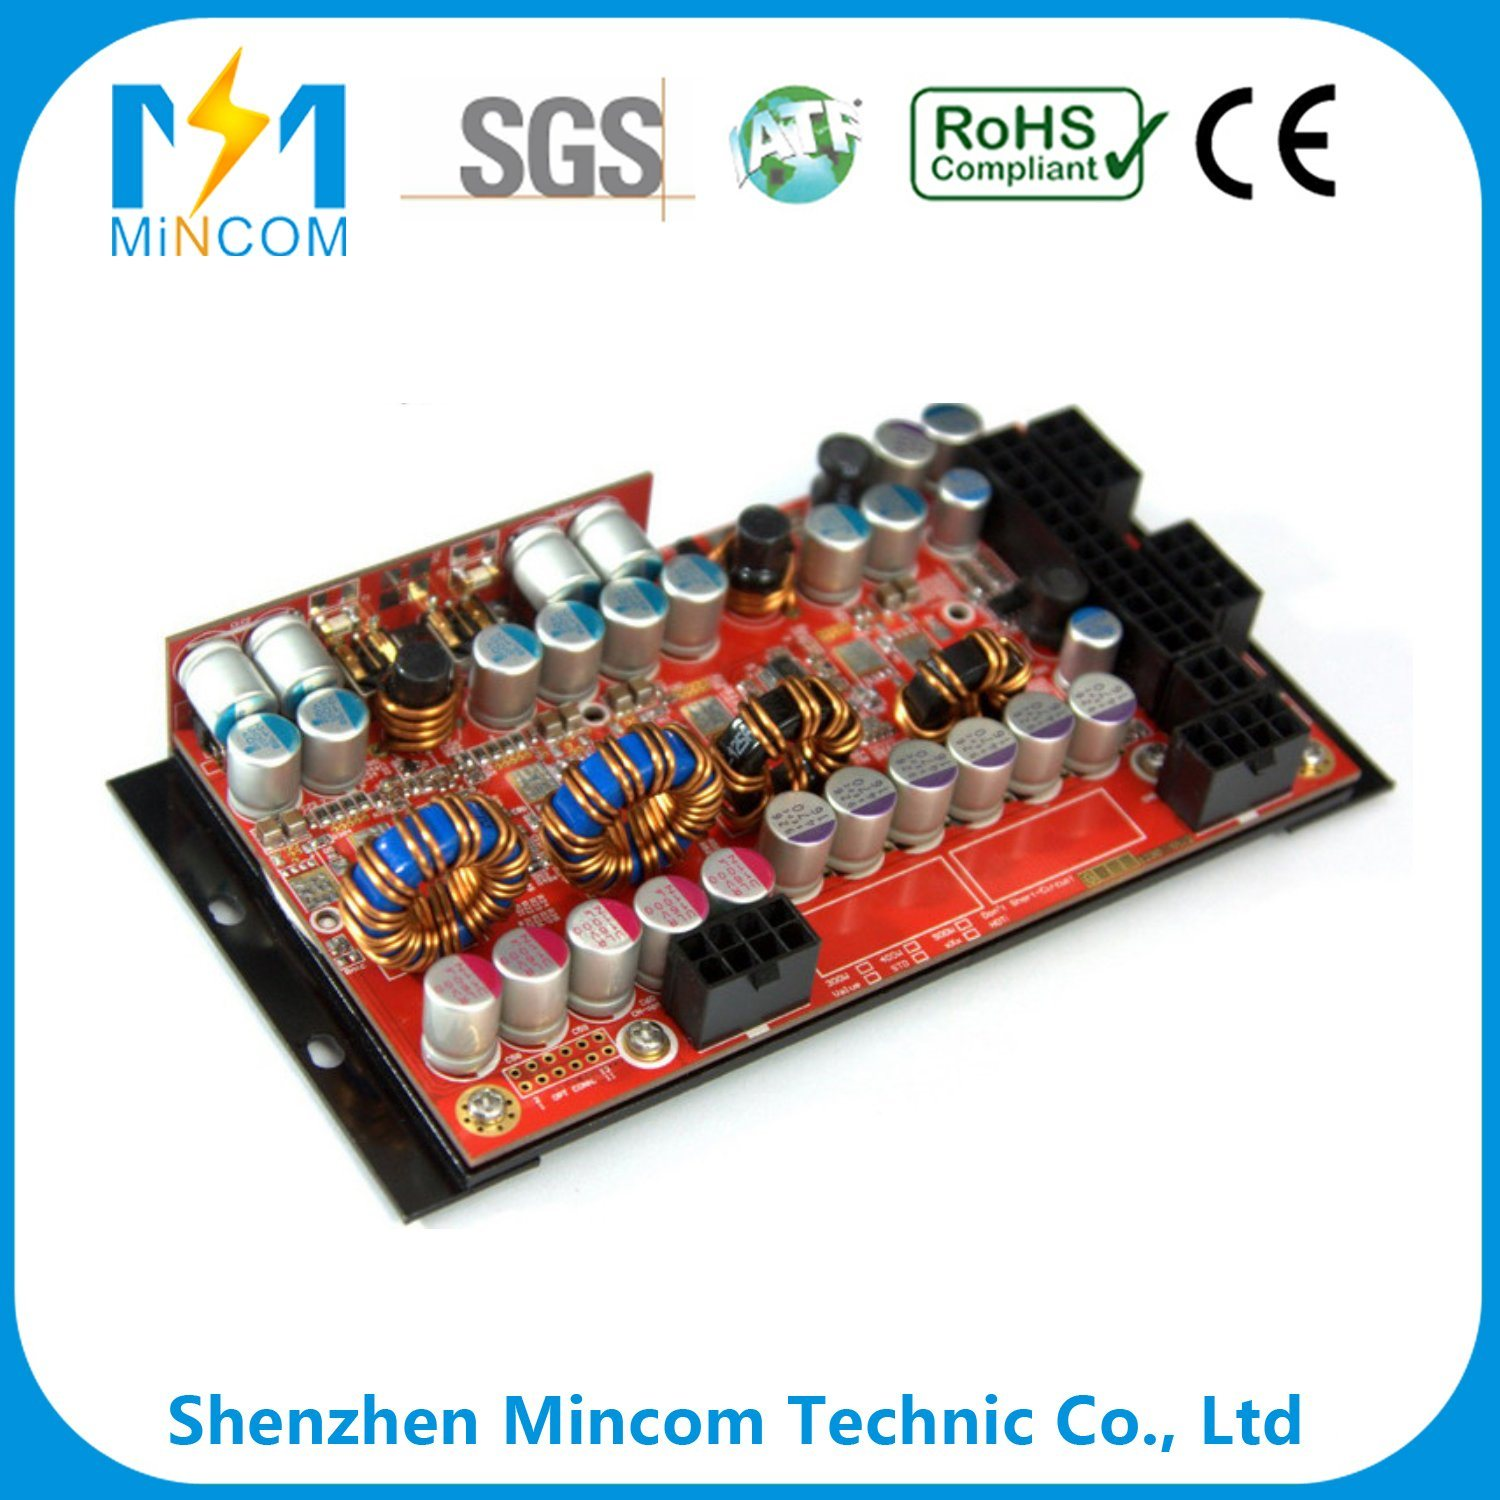 Wholesale Prototype Pcb China Manufacturers Board Buy Circuit Pcbpcb Prototypepcb Maker Suppliers